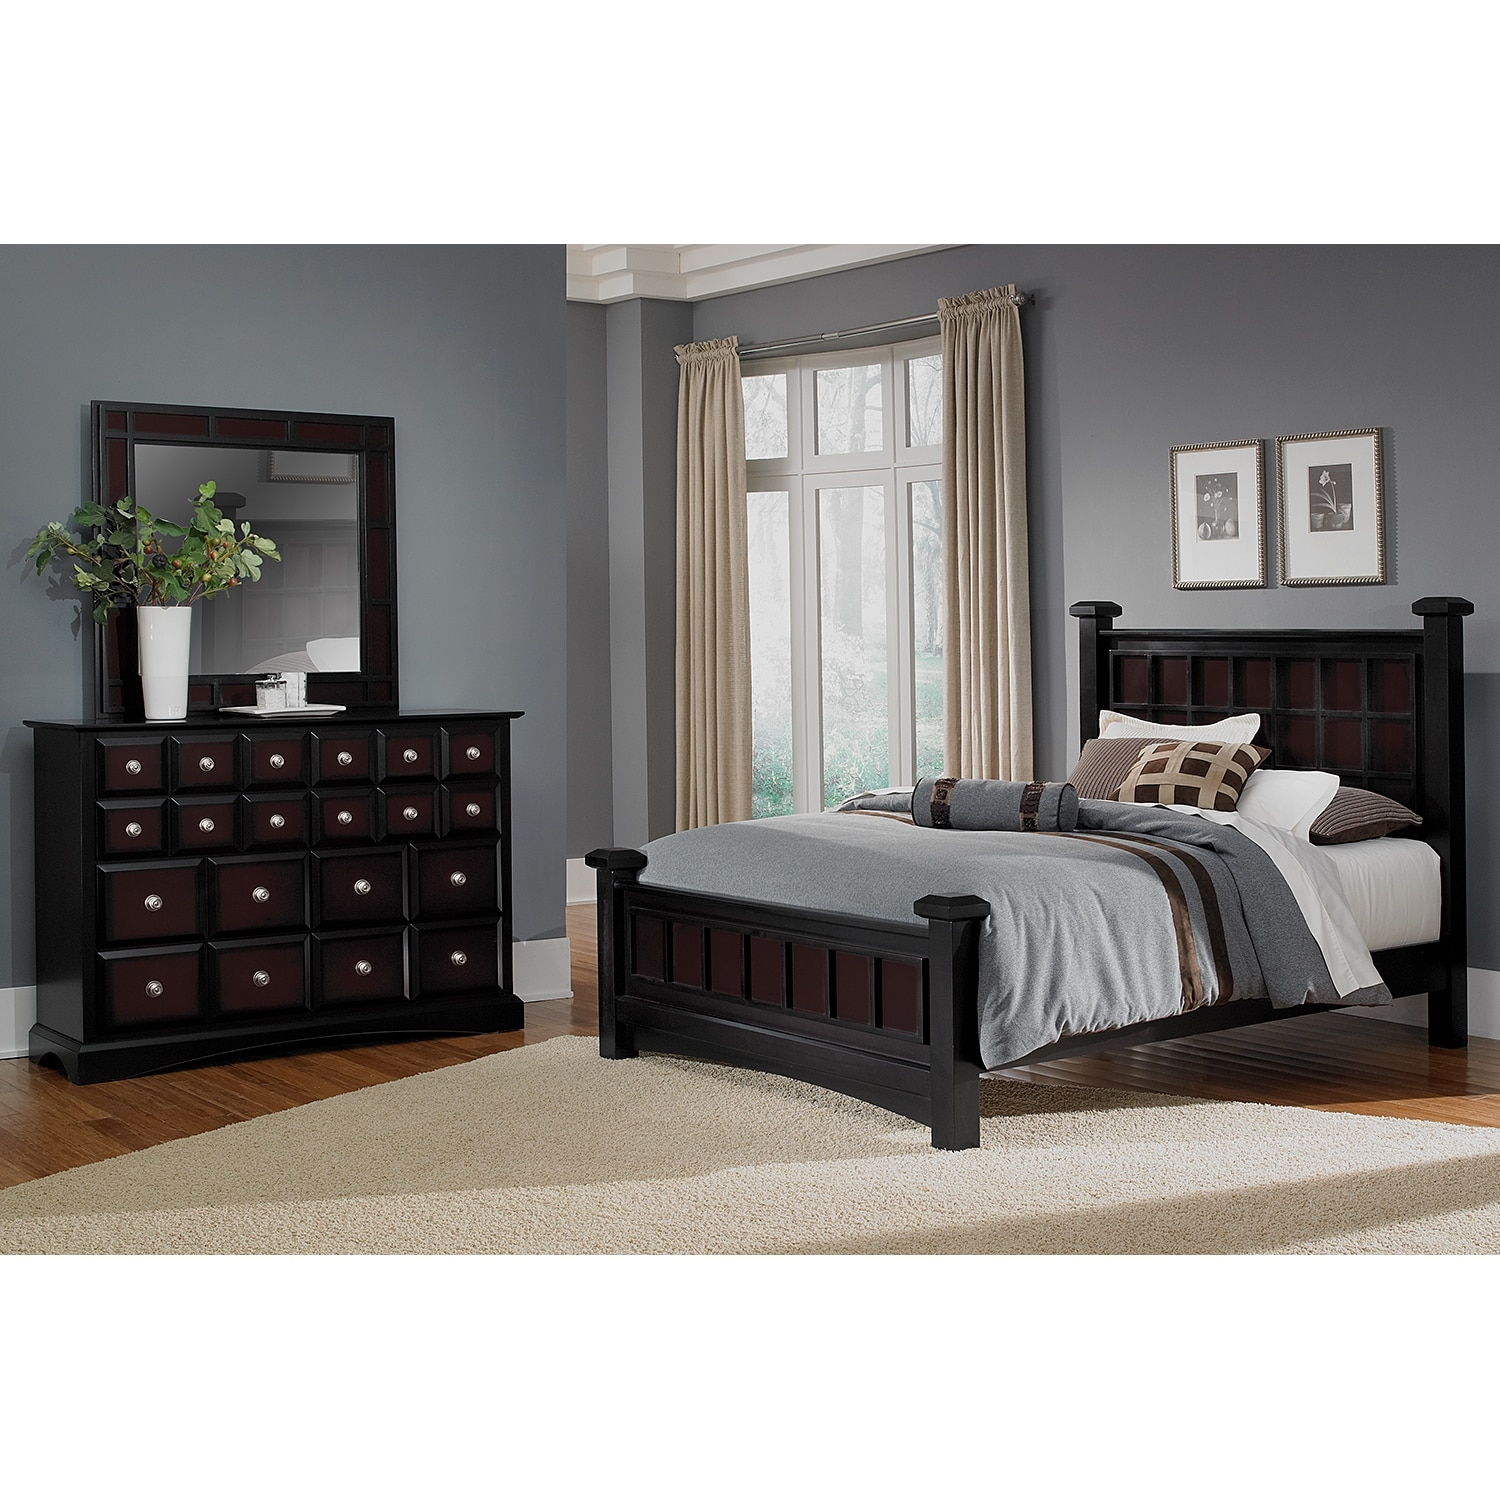 Winchester 5-Piece Queen Bedroom Set